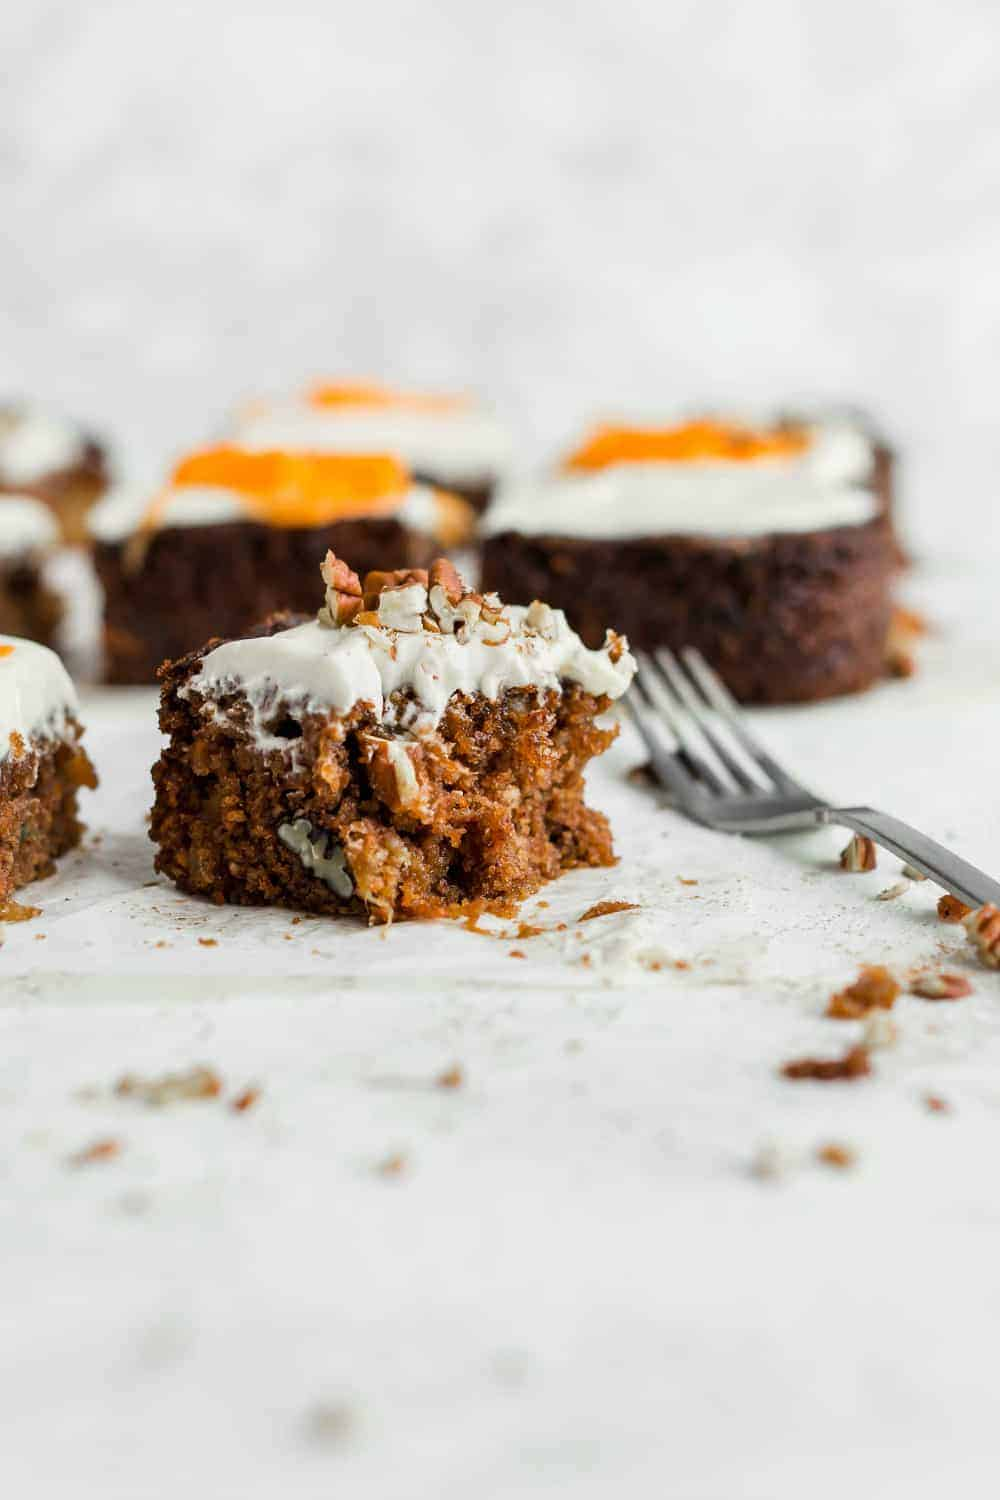 You'll love the moist cake and sweet frosting for this copycat J Alexander's Carrot Cake recipe!